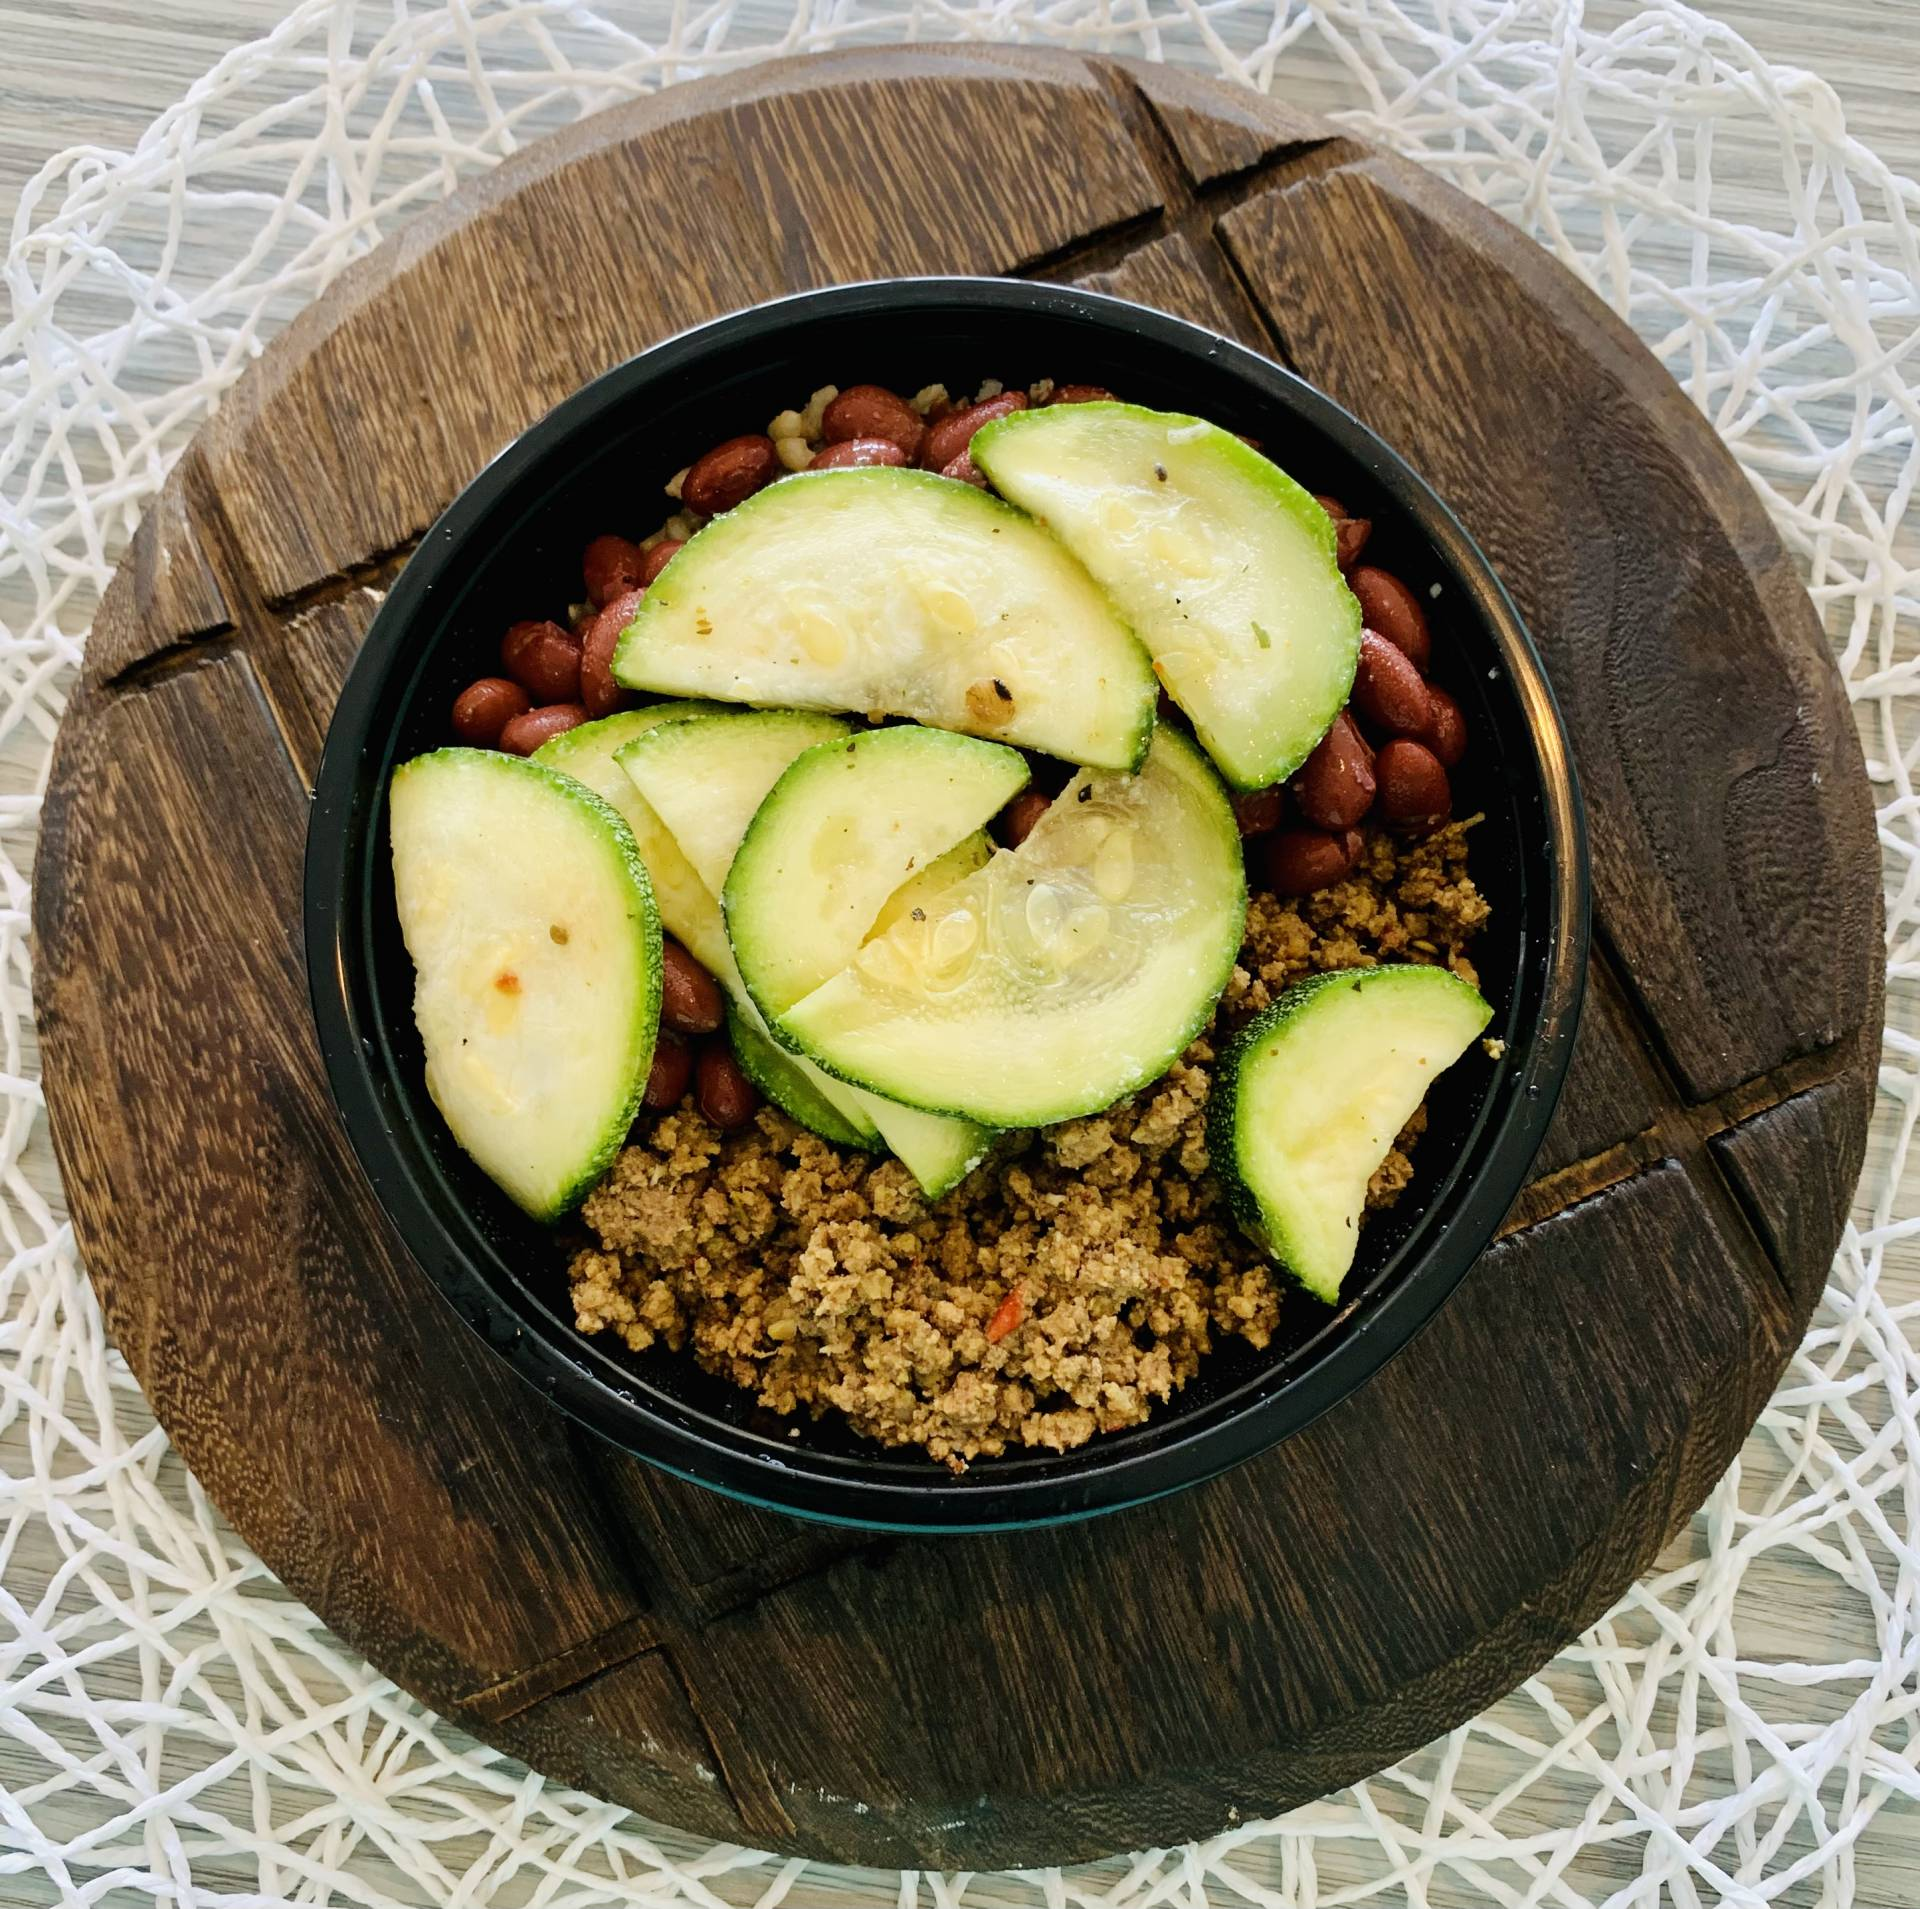 Ground Beef, Red Beans, Wild Rice, Zucchini